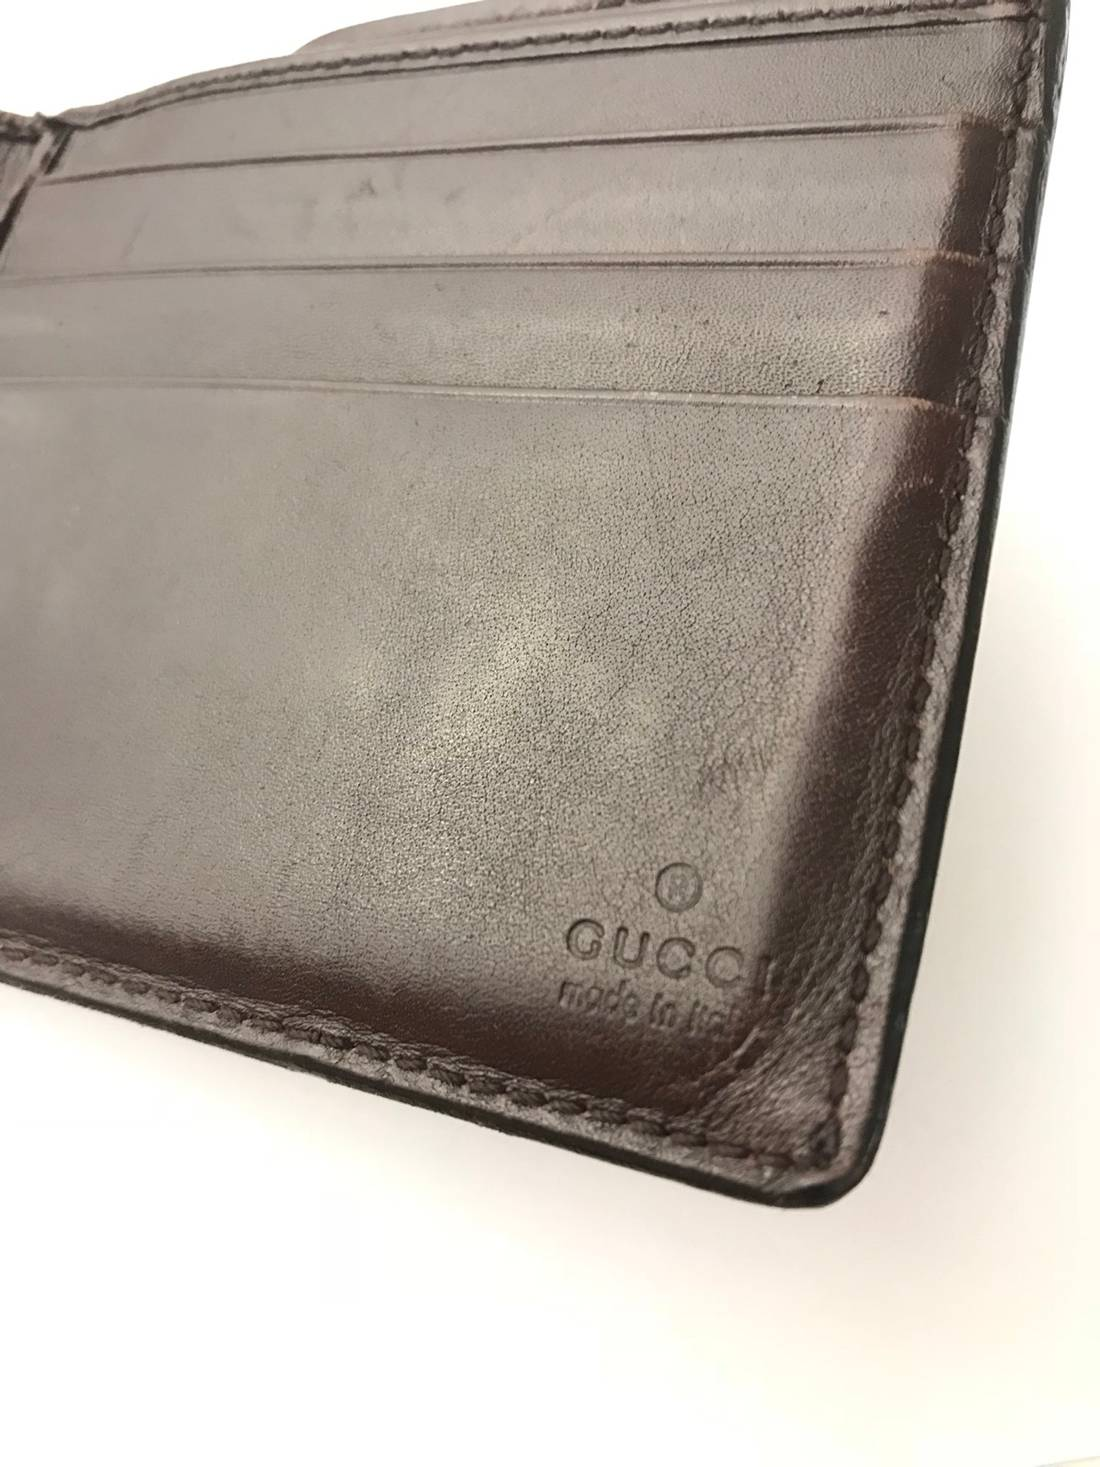 Gucci wallet business card holder size one size wallets for sale gucci wallet business card holder size one size 4 colourmoves